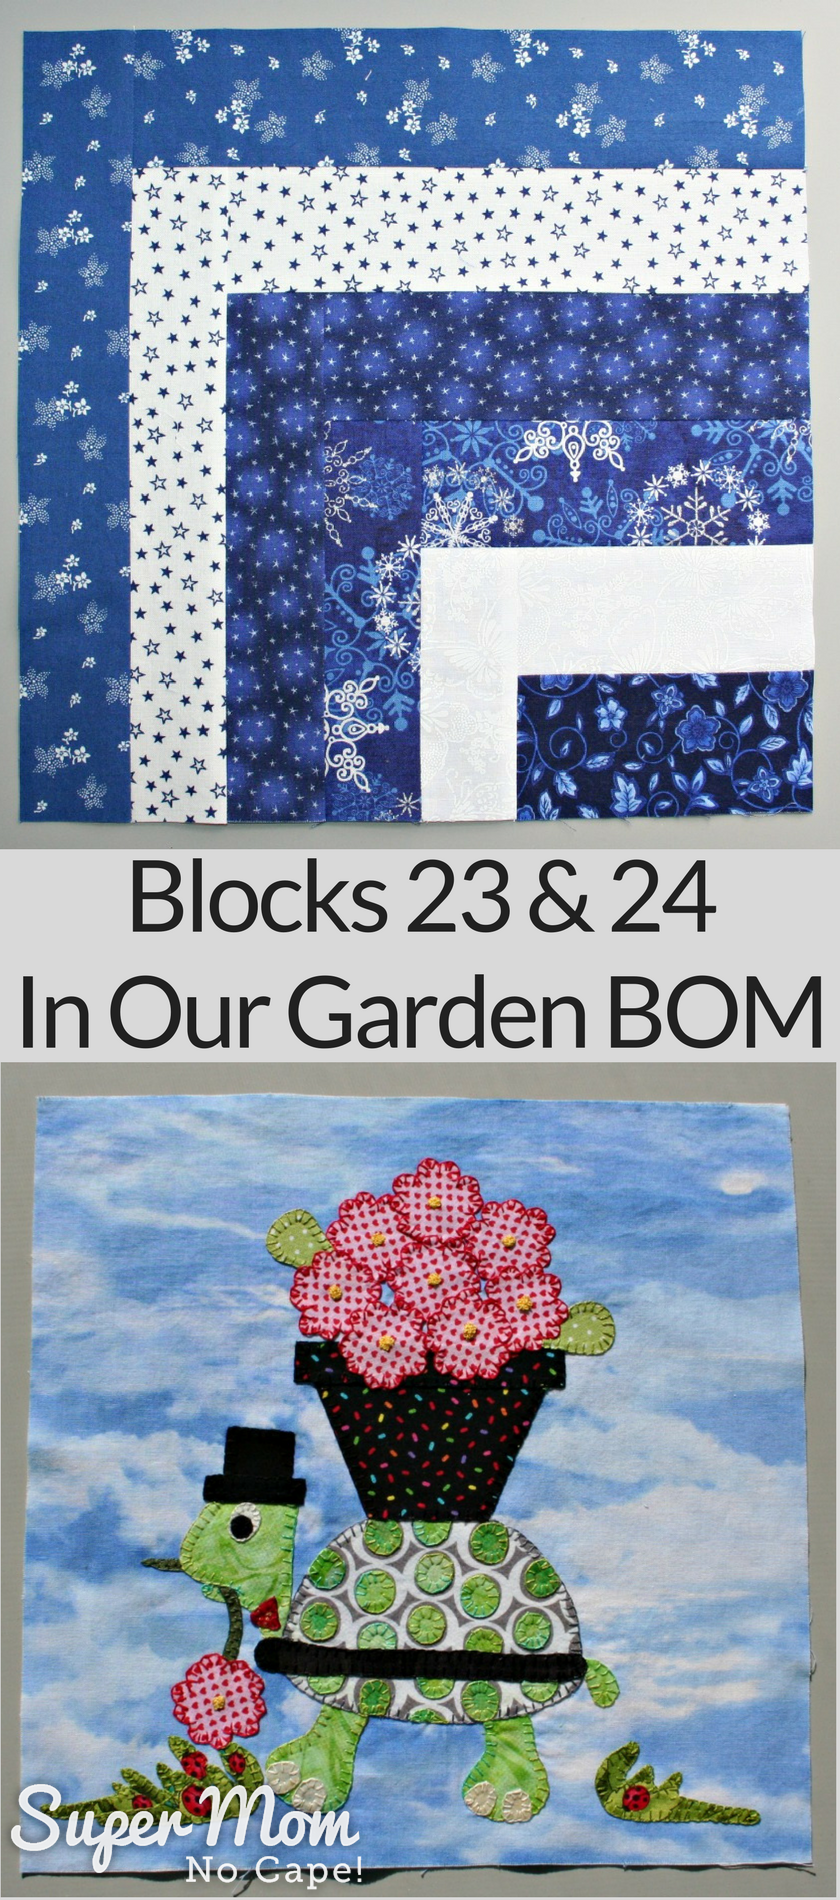 Blocks 23 & 24 - In Our Garden BOM